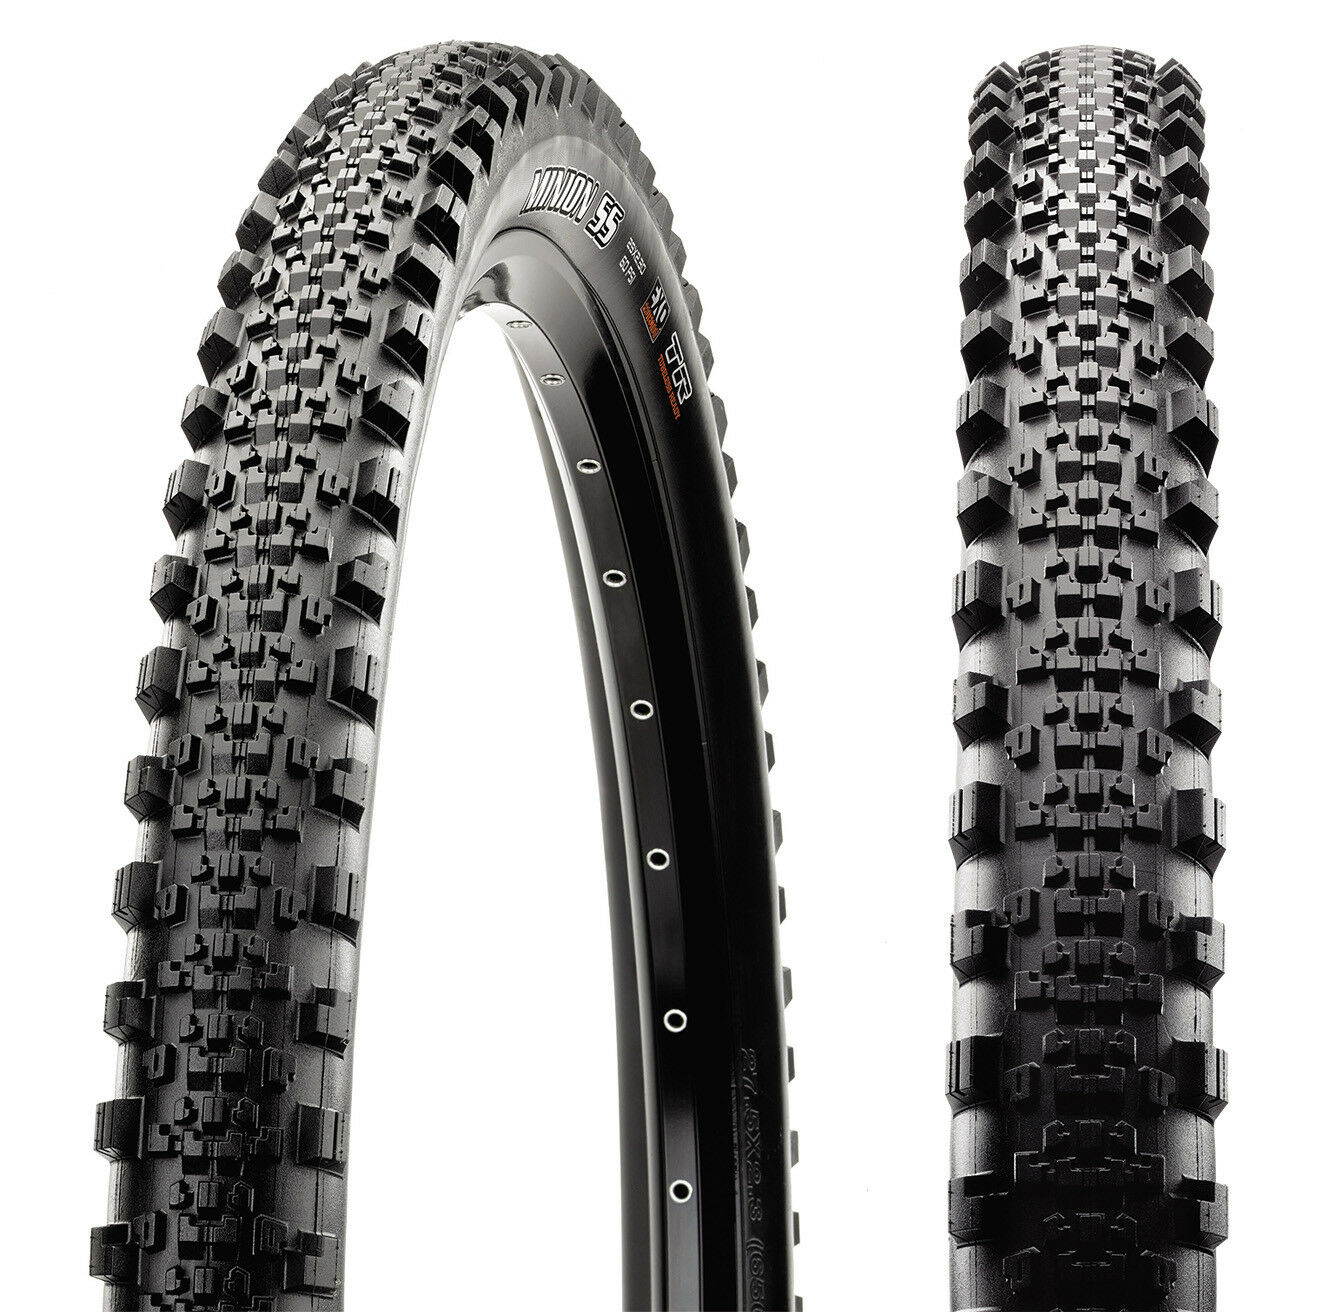 MAXXIS Minion SS 27.5x2.30 60TPI Foldable  Exo   TR Silkworm Dual 765g  online shopping and fashion store